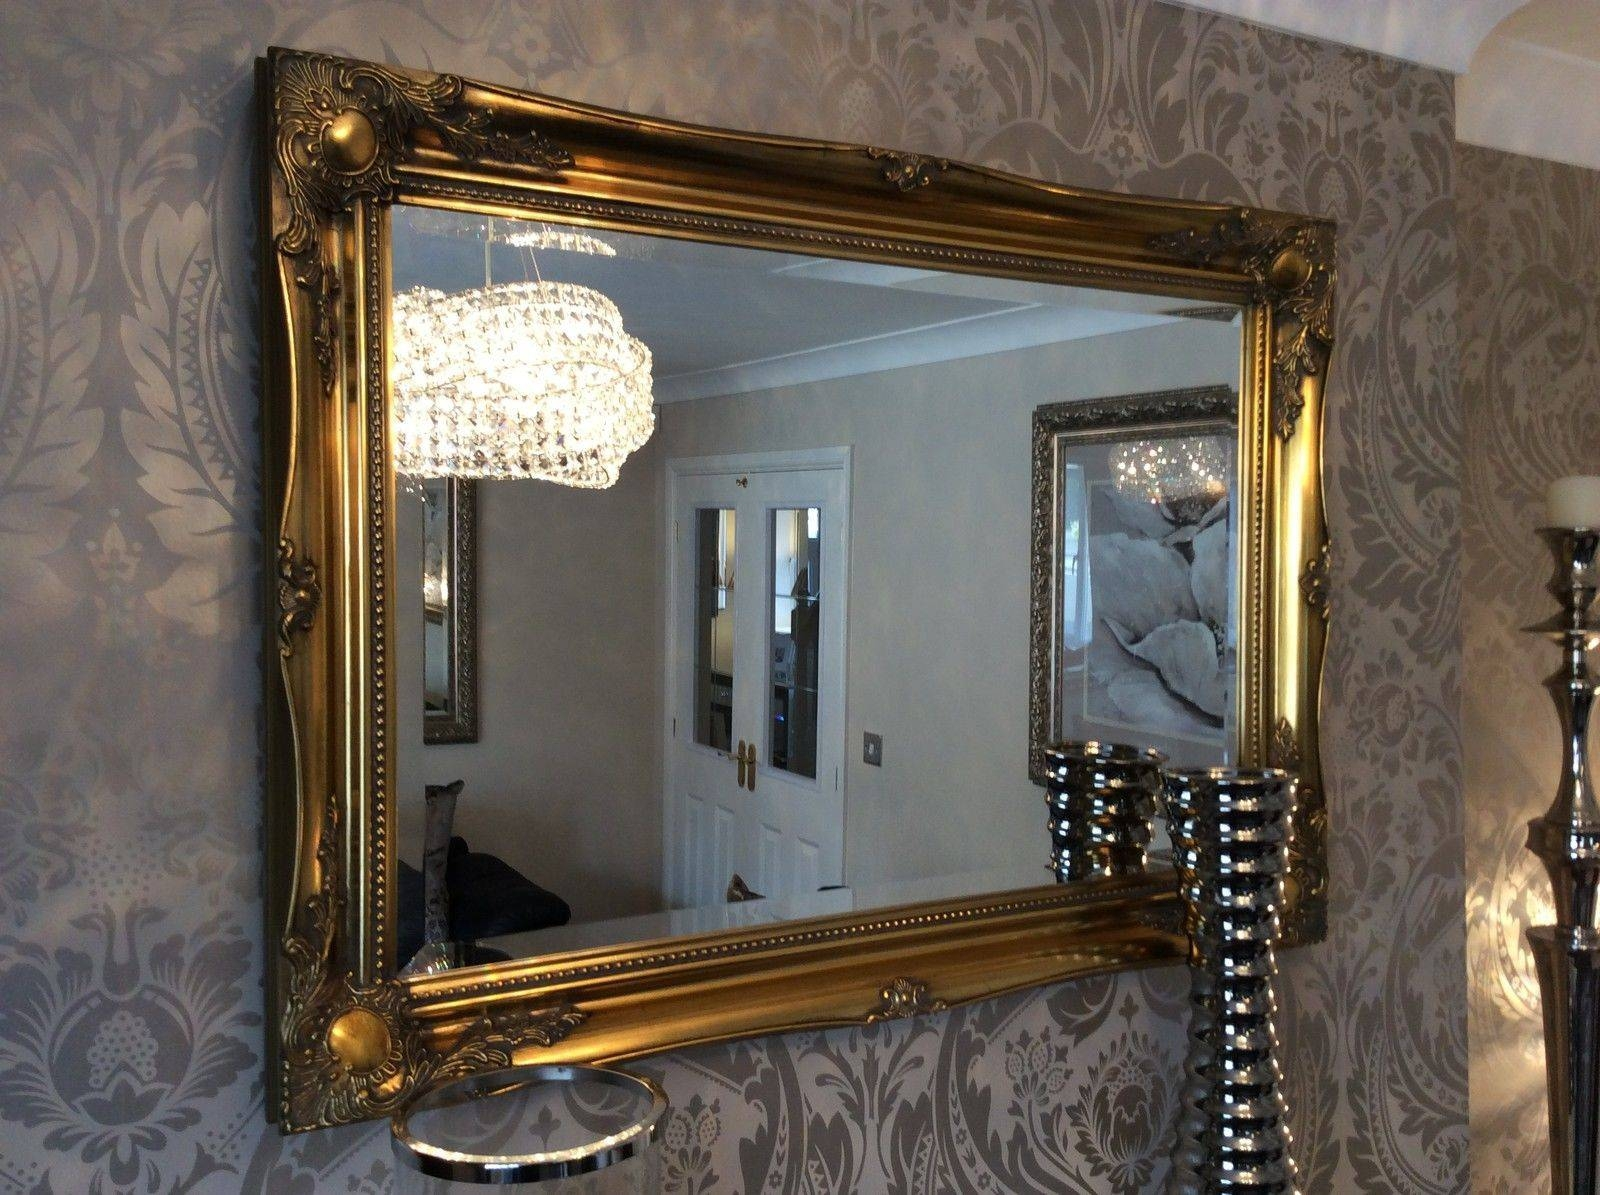 Large Mirrored Picture Frames Uk - Best Frames 2017 throughout Gilt Framed Mirrors (Image 15 of 25)